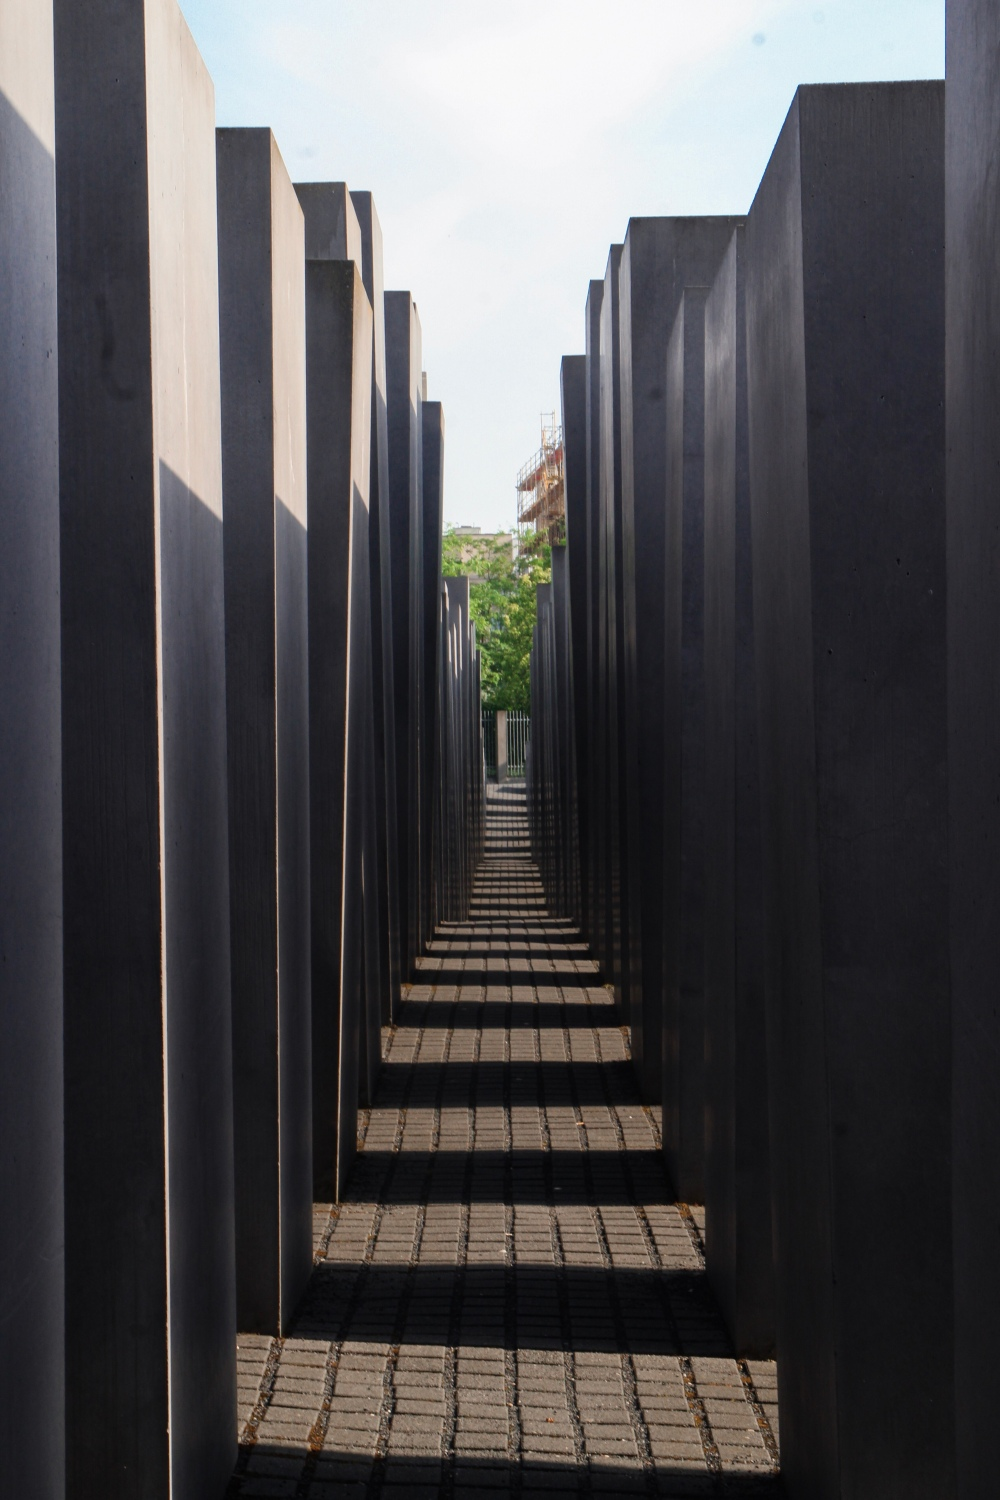 The Holocaust Memorial in Berlin made out of large concrete blocks